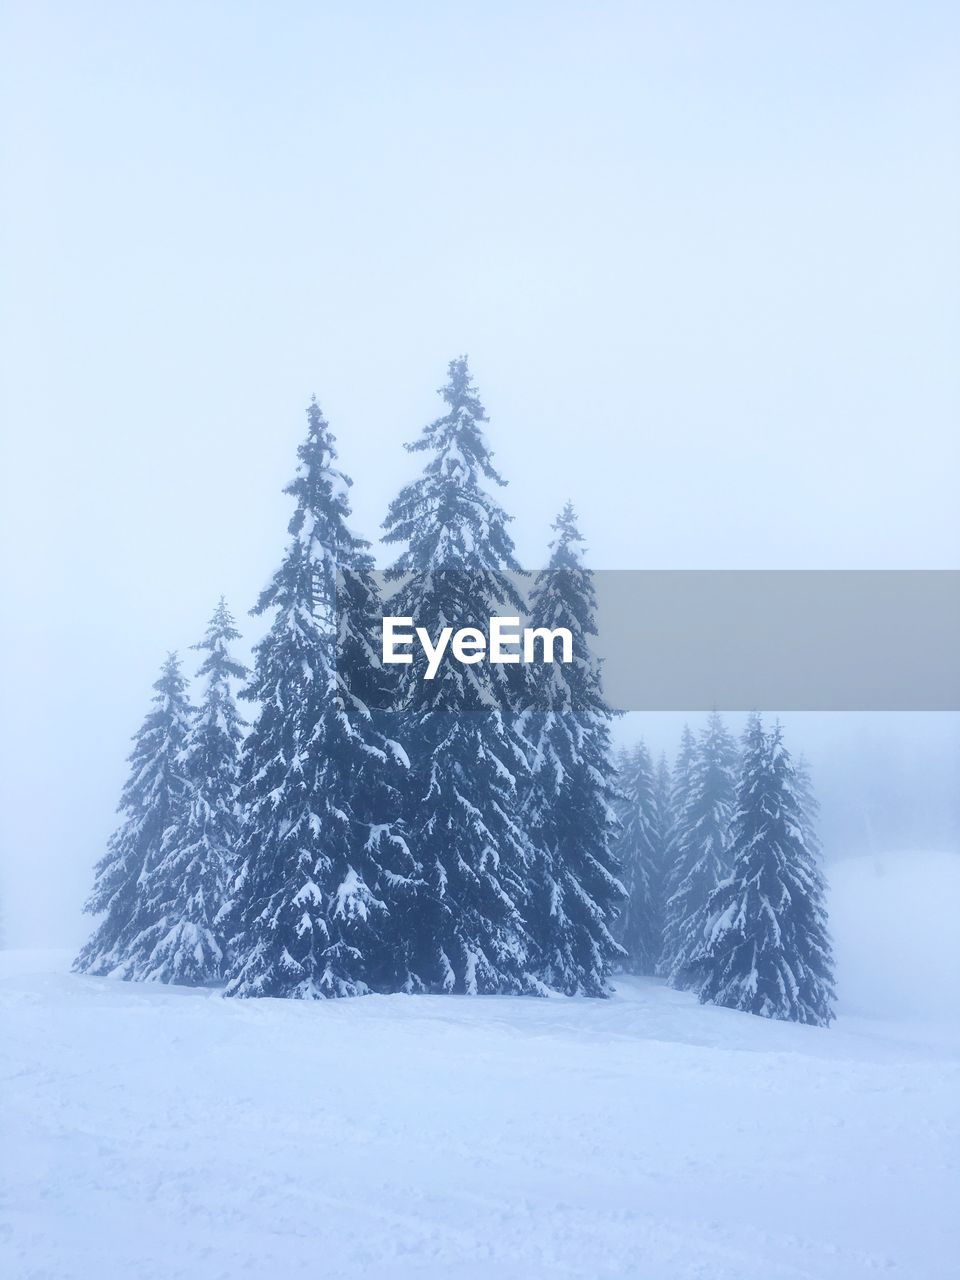 PINE TREES ON SNOW COVERED LAND DURING WINTER